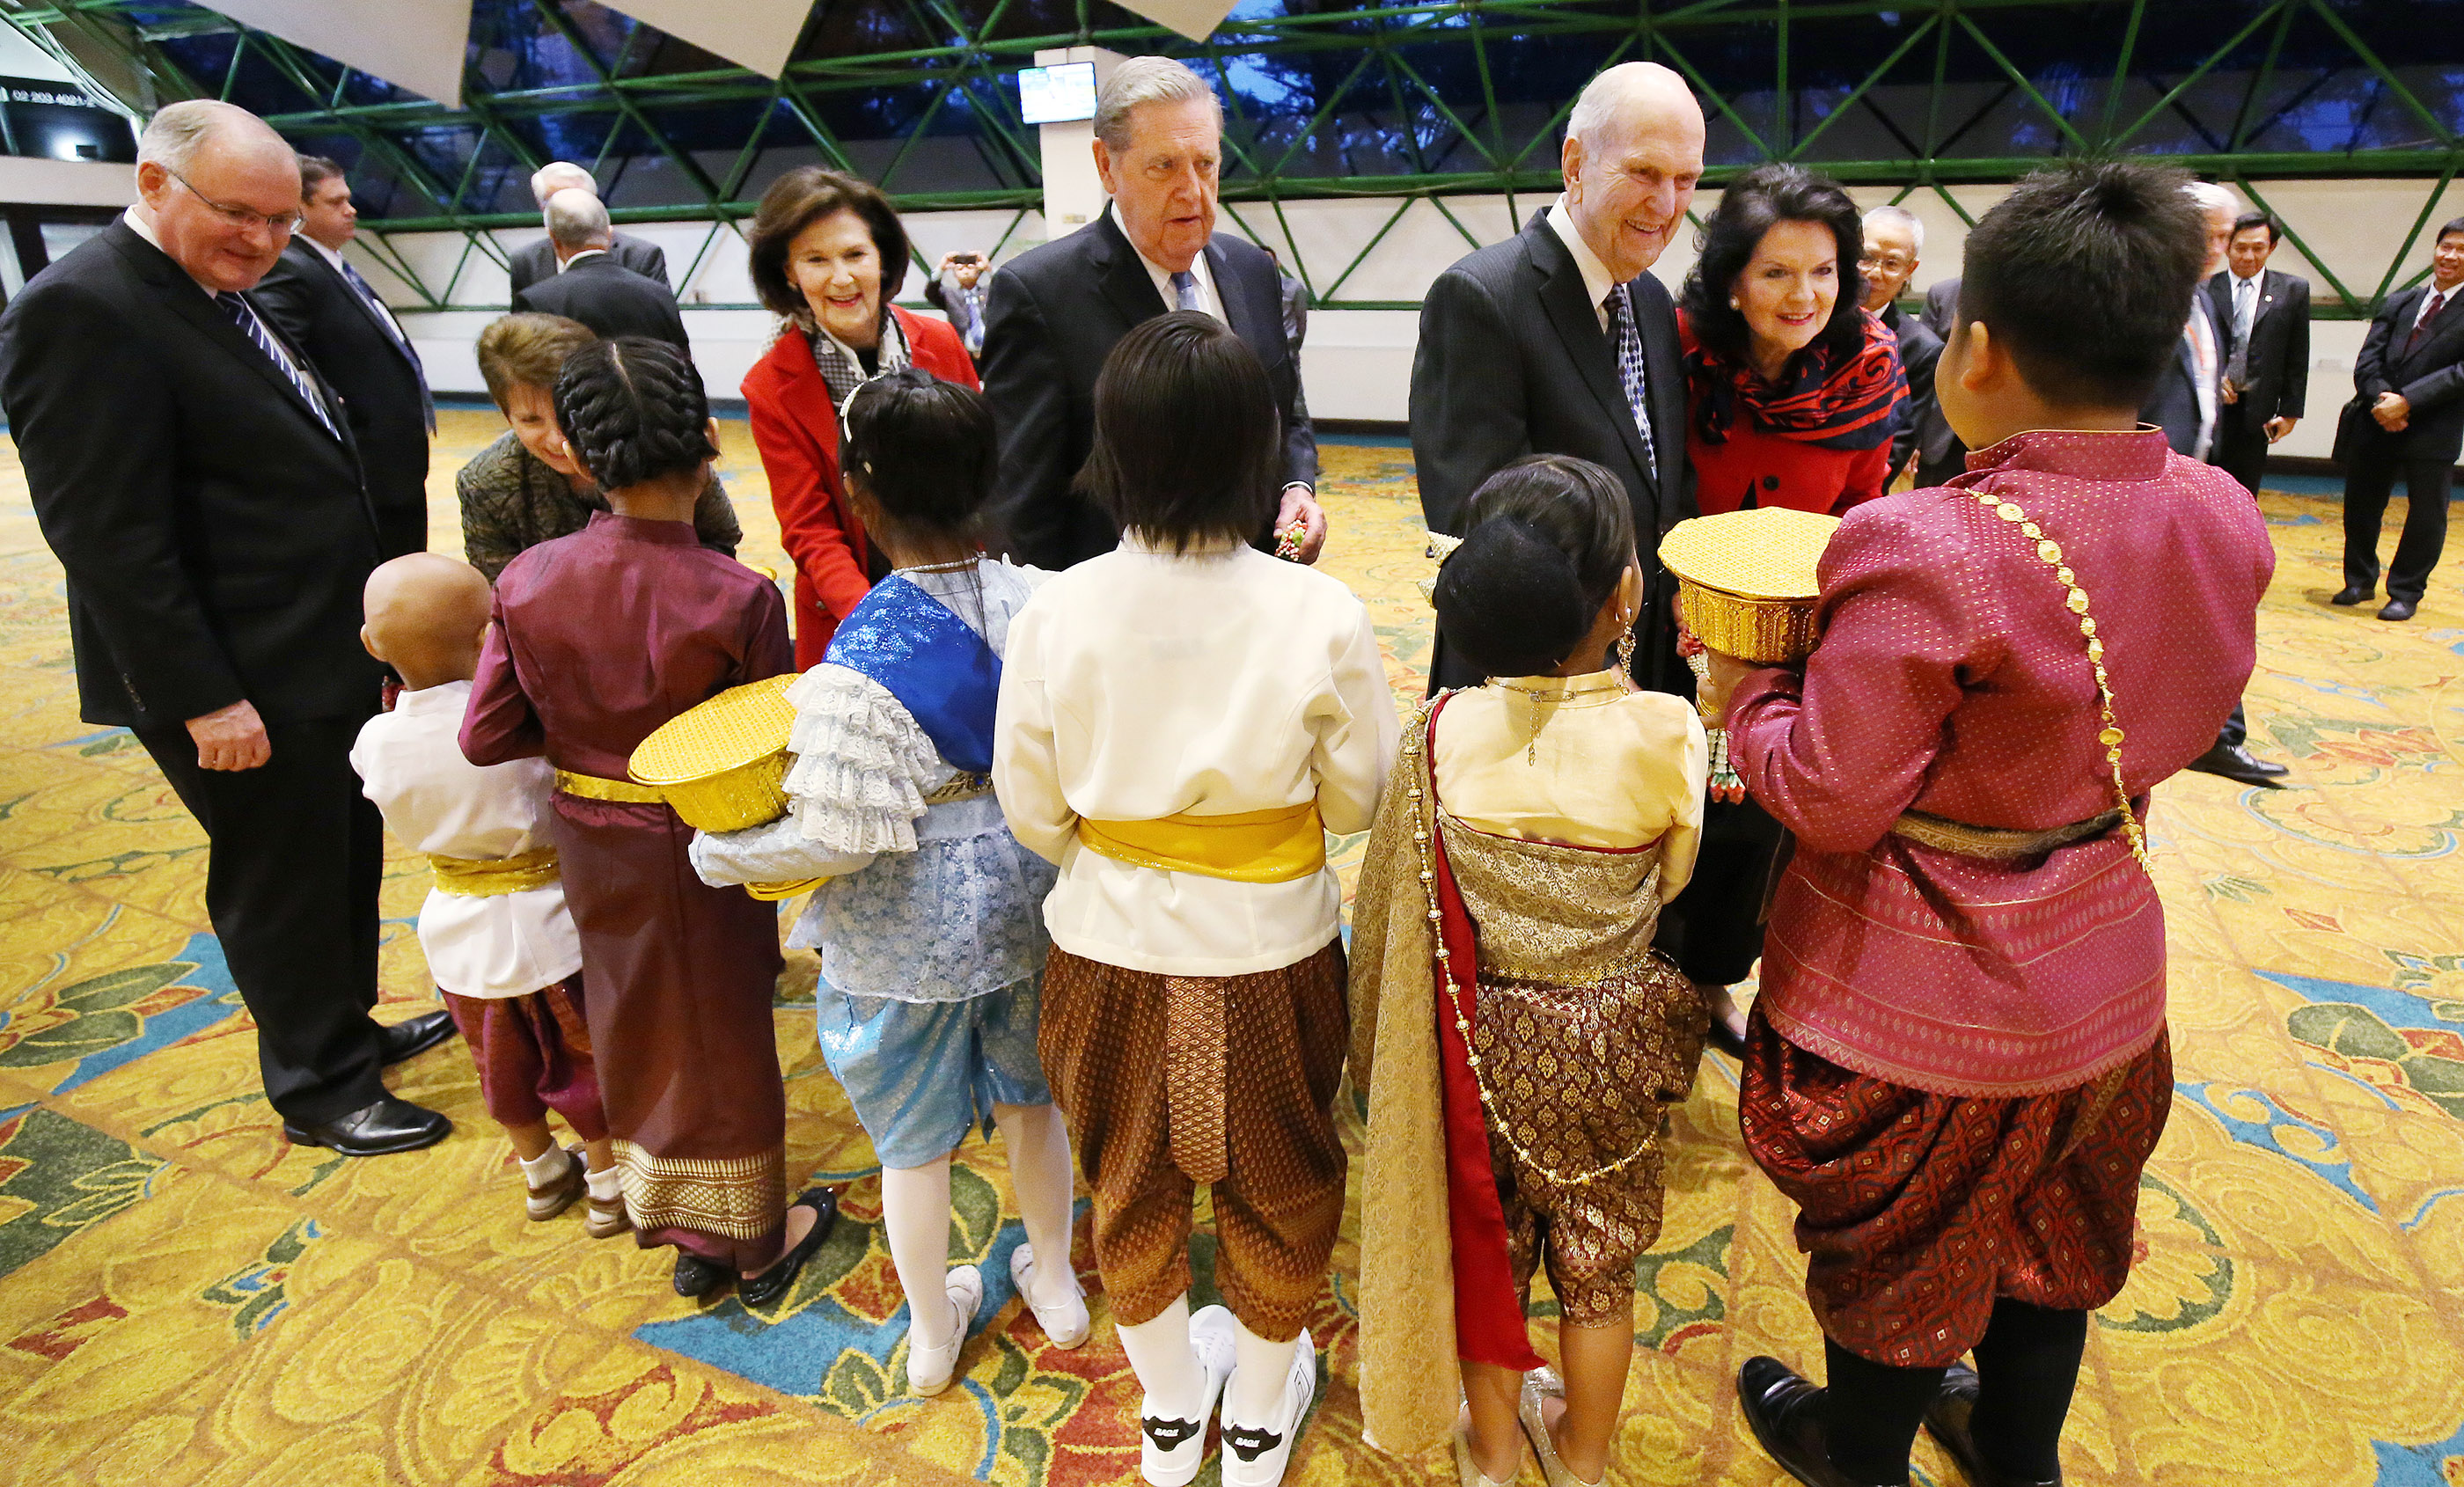 Russell M. Nelson and his wife, Sister Wendy Nelson, and Elder Jeffrey R. Holland, Quorum of the Twelve Apostles, and his wife, Sister Patricia Holland, are greeted and given flowers by Primary children in Bangkok, Thailand, on Friday, April 20, 2018.